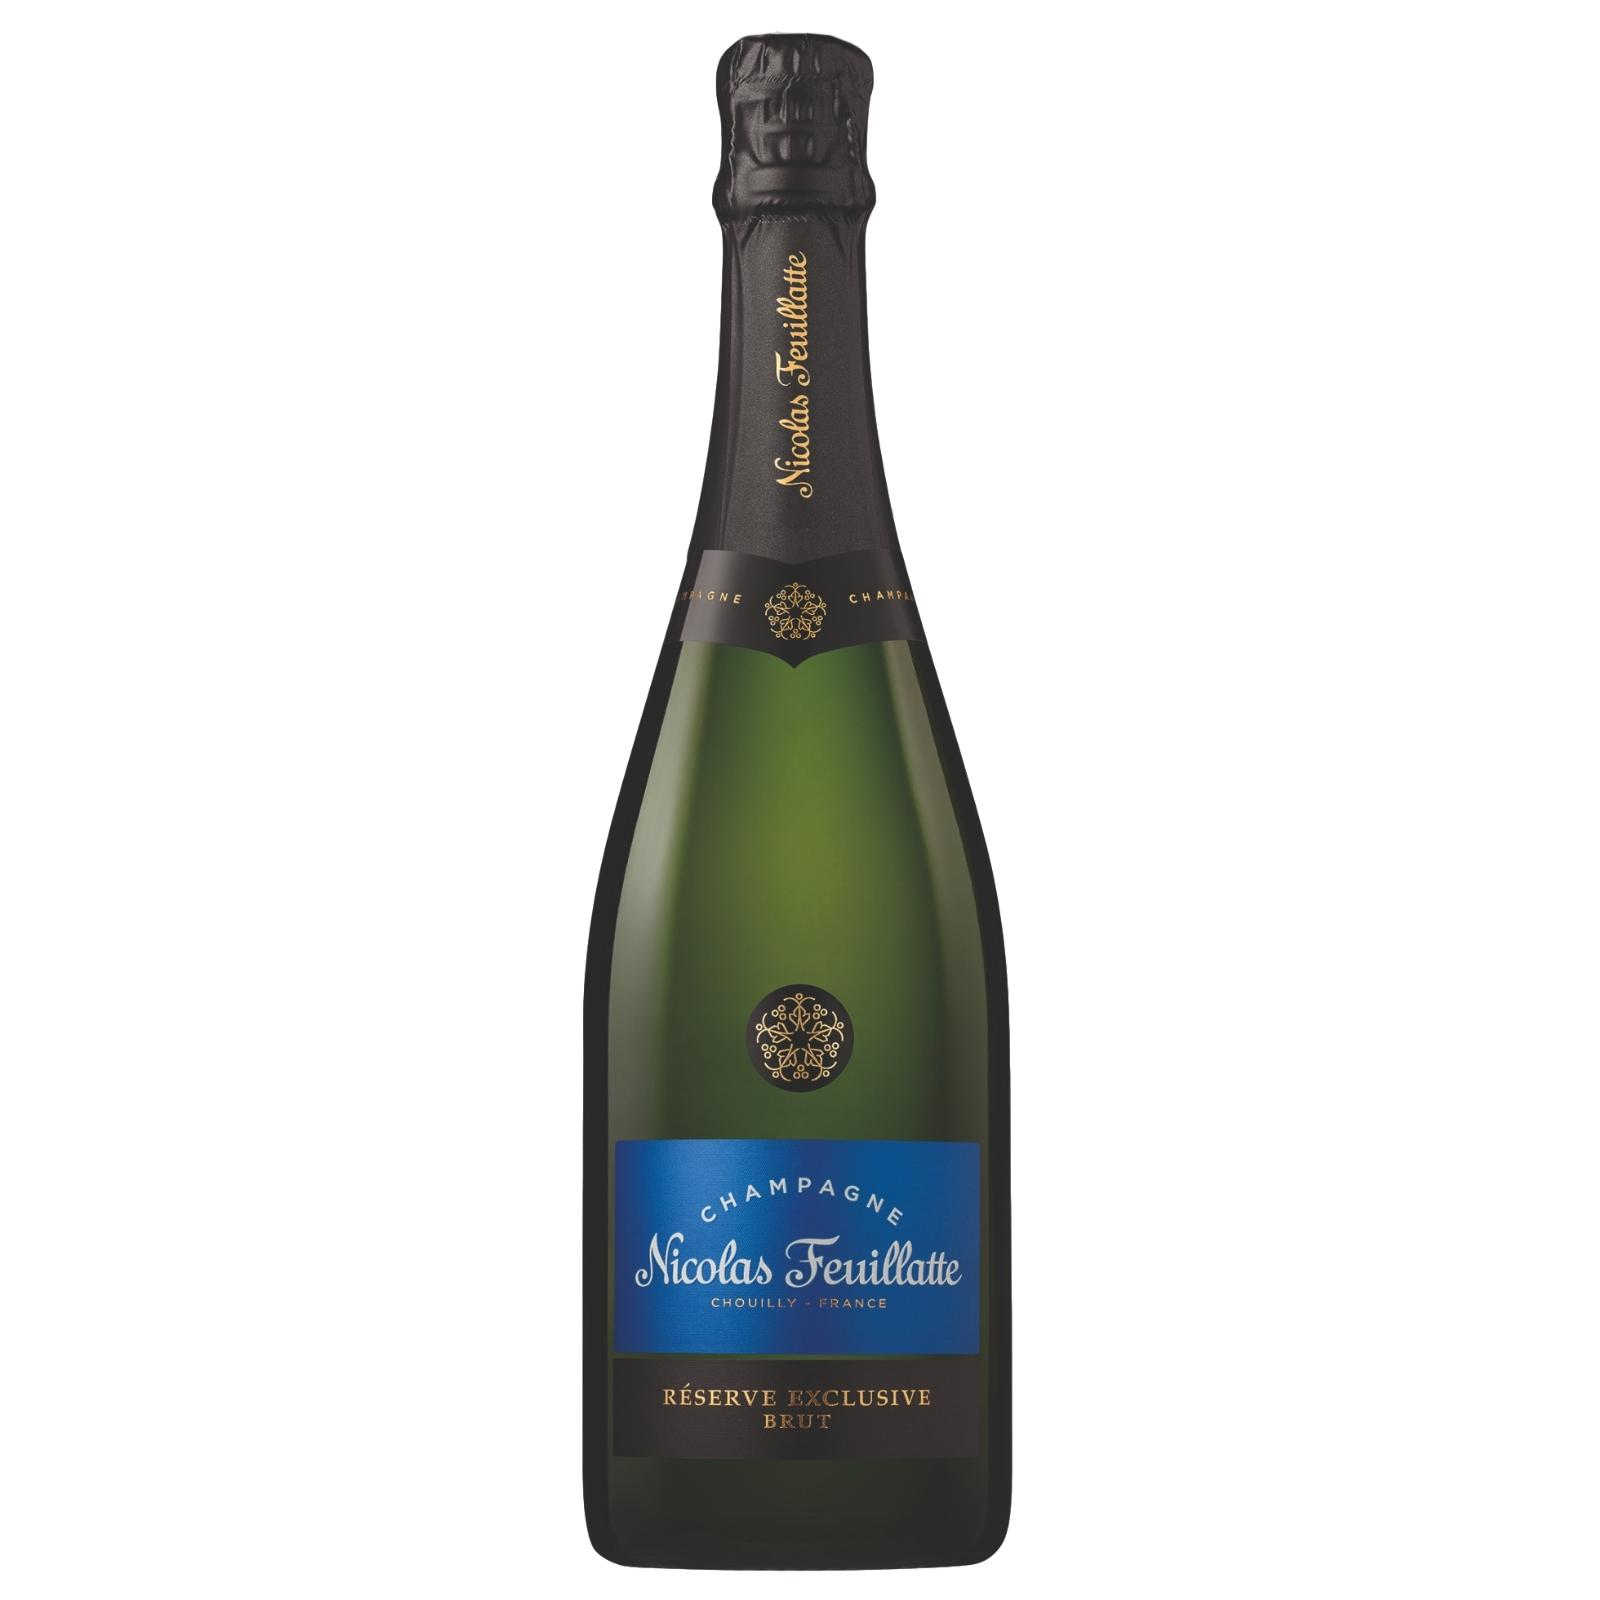 Nicolas Feuillatte Reserve Exclusive Brut Champagne Nv 750ml By C&c Drinks Shop - Three Kraters.